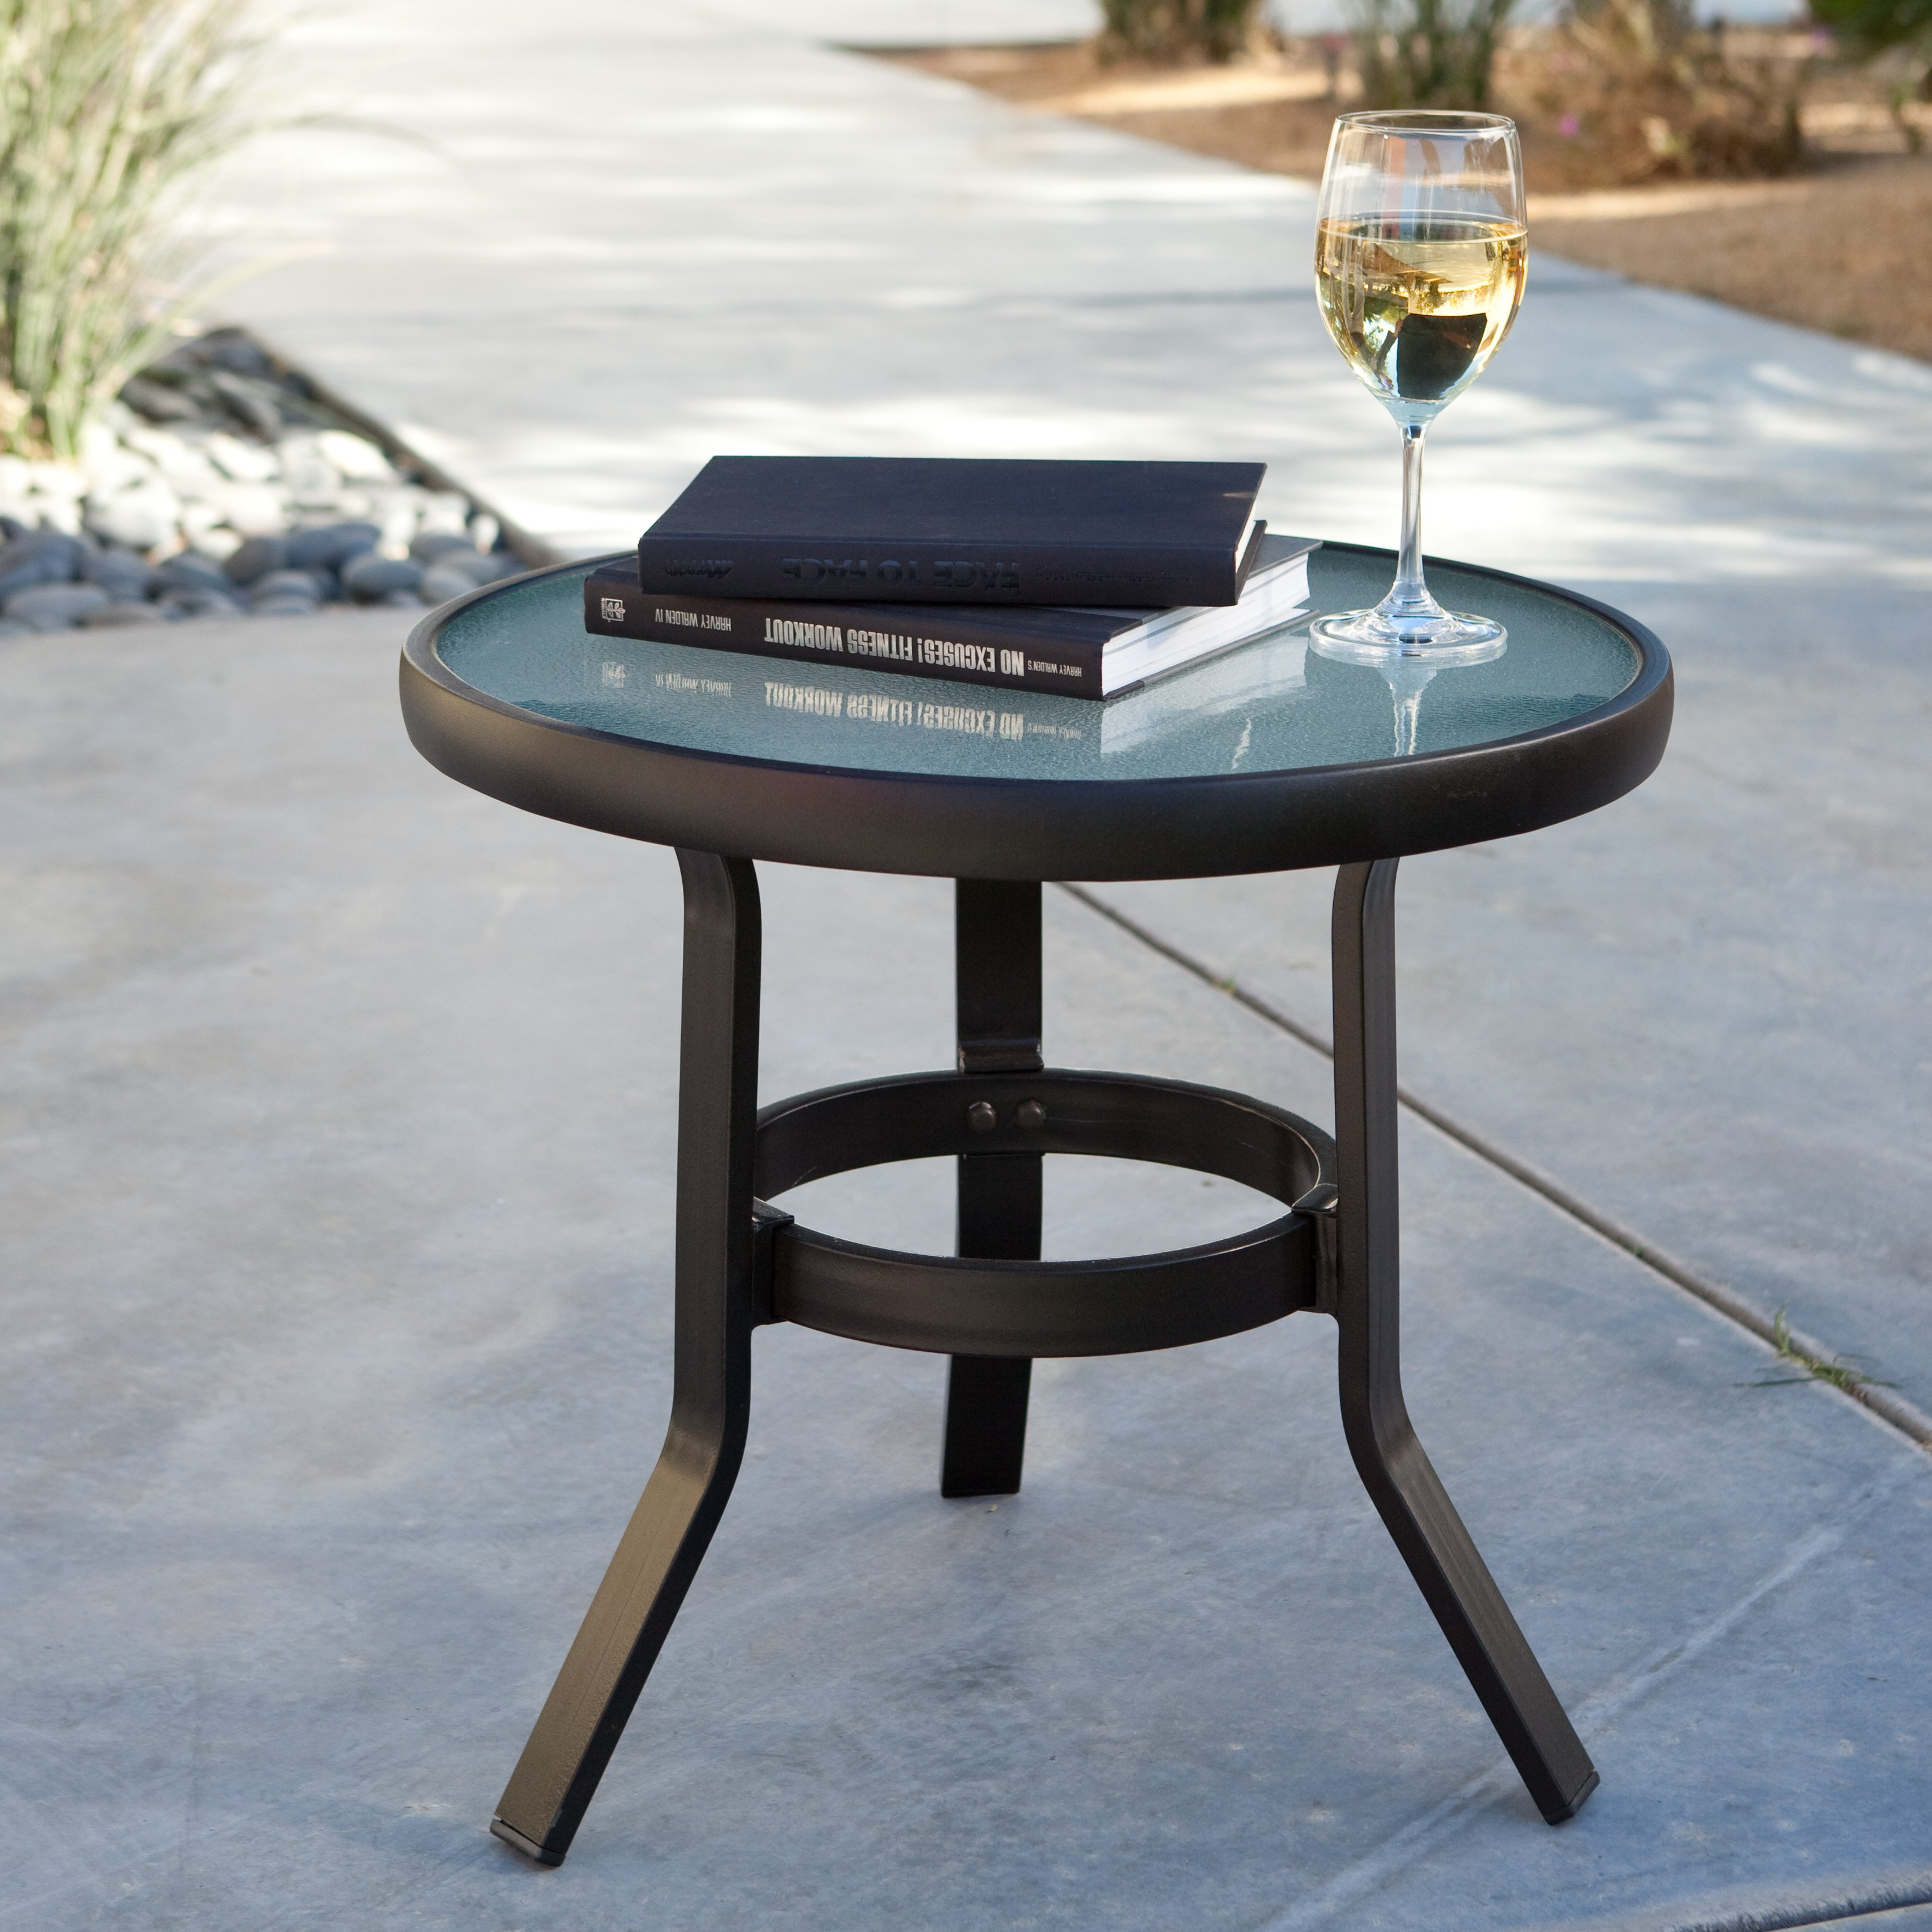 coral coast patio side table accent tables unfinished target black outdoor tall bedside lamps oval glass and metal coffee teal entryway light furniture mirror sofa for small space